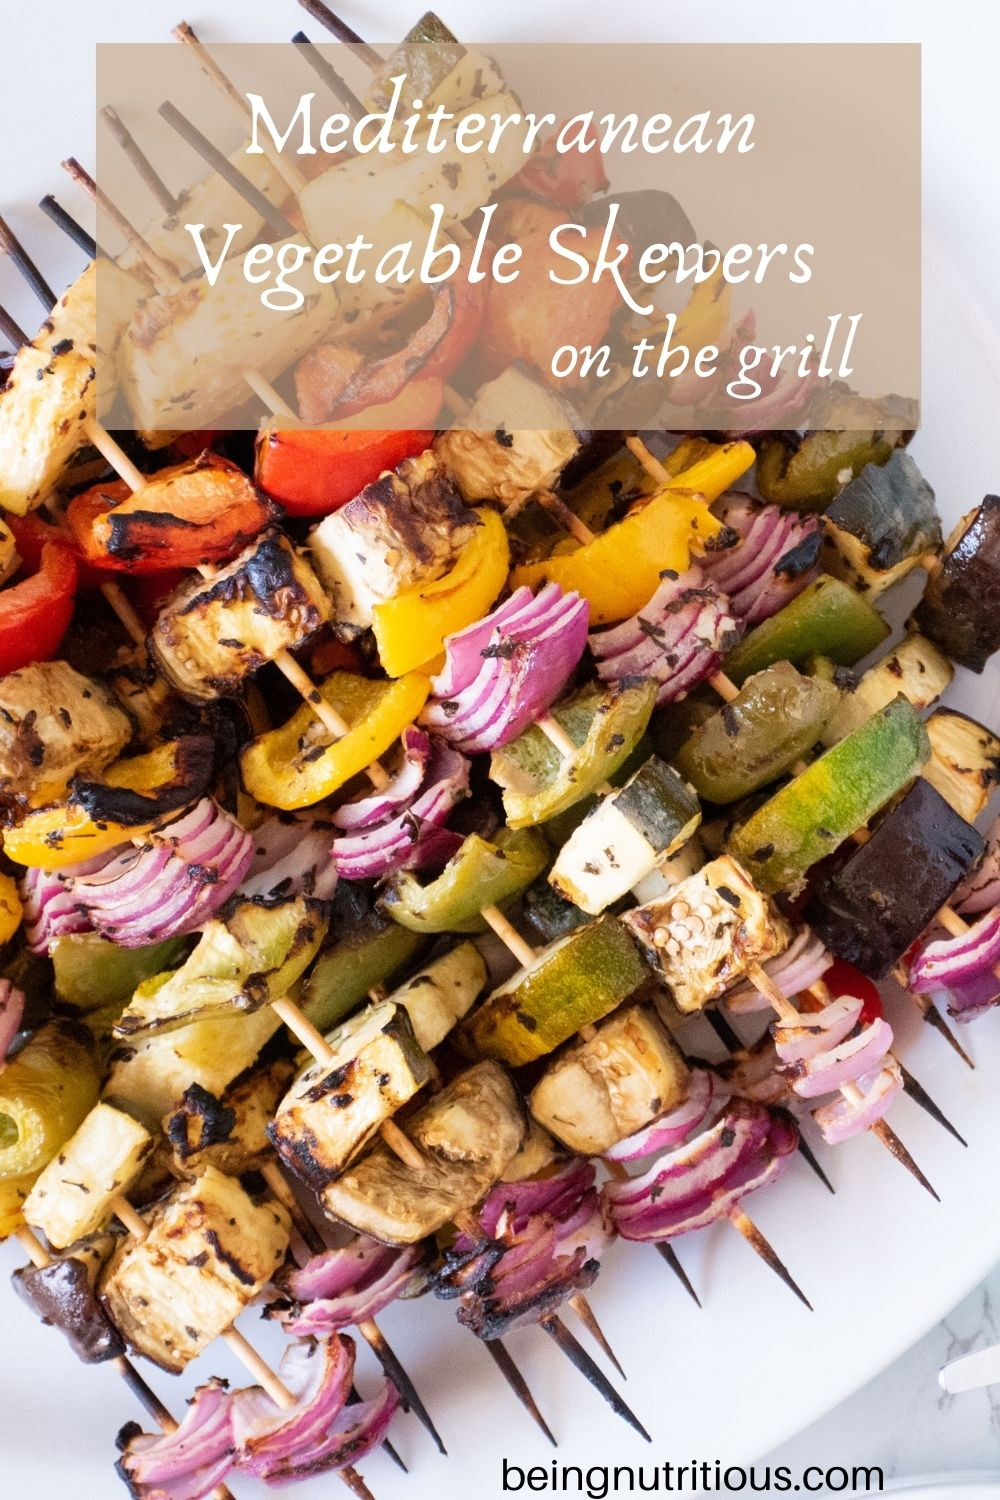 Serving platter with vegetable skewers piled on. Text overlay: Mediterranean Vegetable Skewers on the Grill.